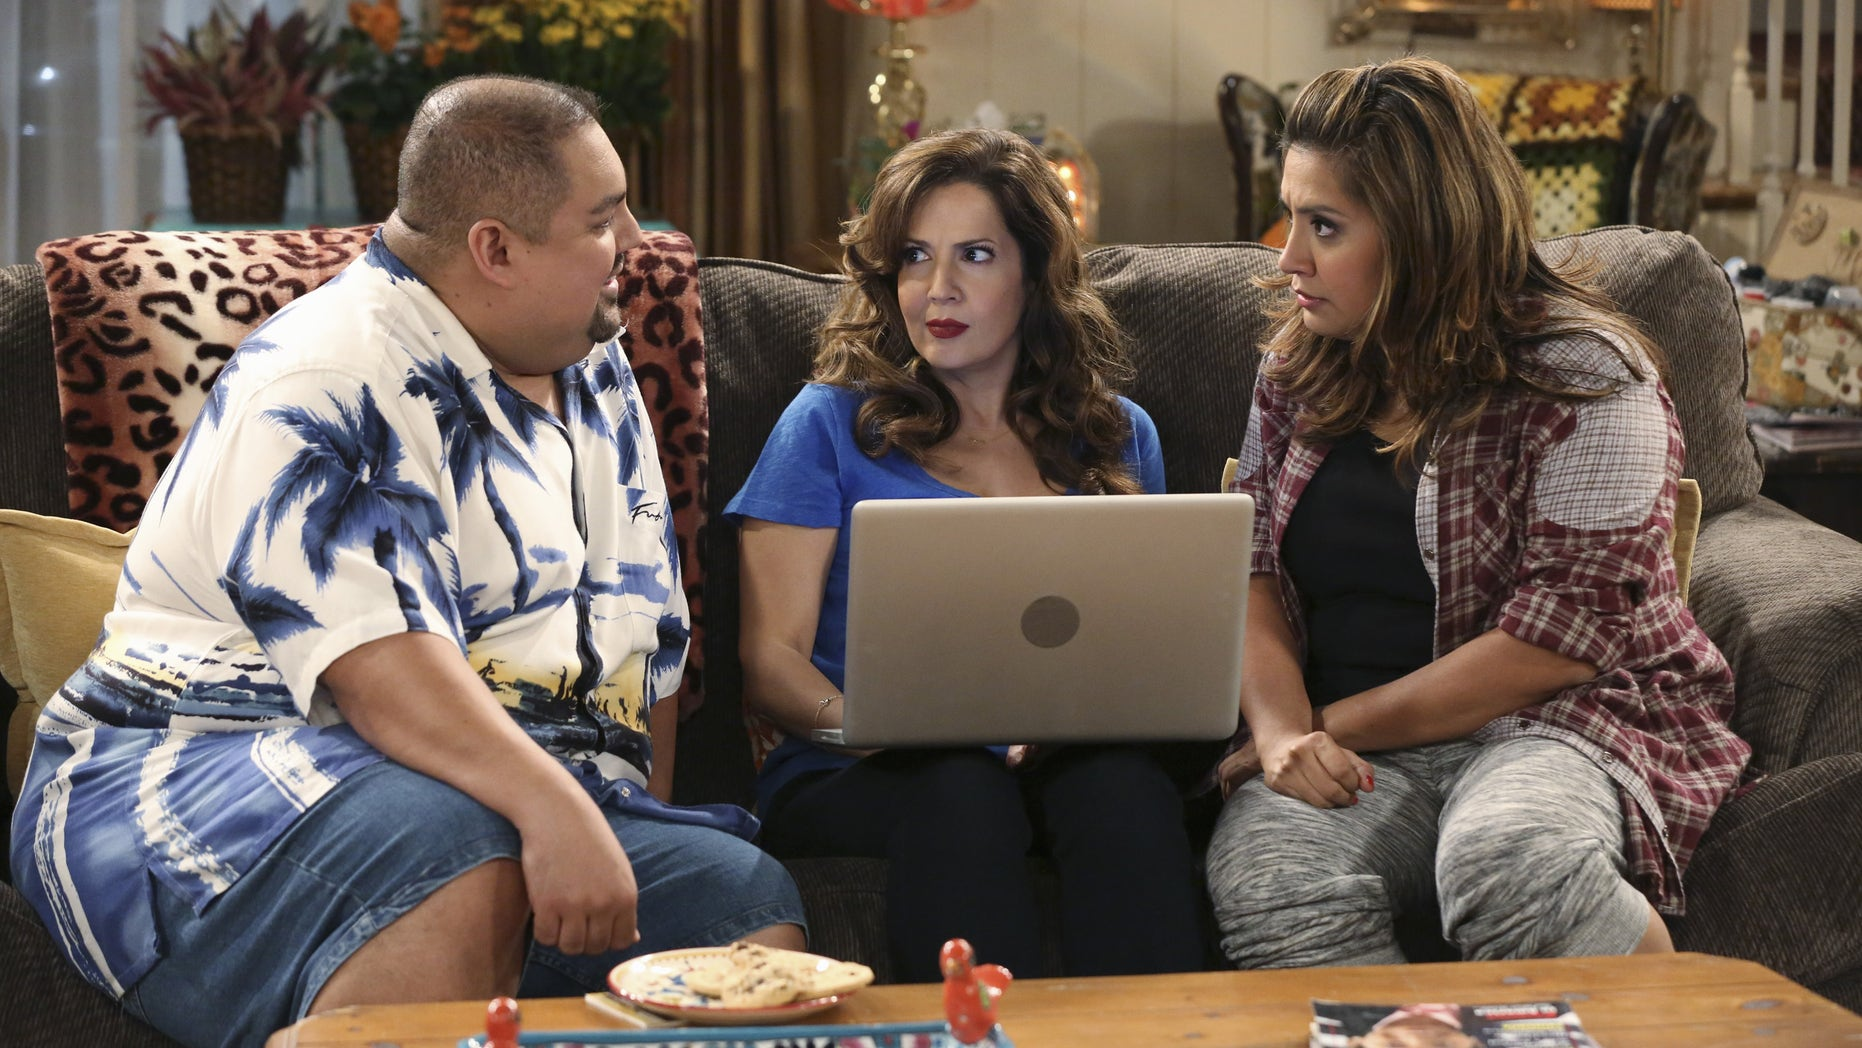 """CRISTELA - """"Soul Mates"""" - Daniela signs up a reluctant Cristela for an online dating site but when her ad starts getting attention, Cristela agrees to go out on a blind date with one of her suitors. Her date ends up being someone Cristela least expects. Will Cristela stray from her """"life plan"""" to give love a chance? Find out on """"Cristela,"""" FRIDAY, OCTOBER 17 (8:31-9:00 p.m., ET), on the ABC Television Network. (Photo by Adam Taylor/ABC via Getty Images)"""